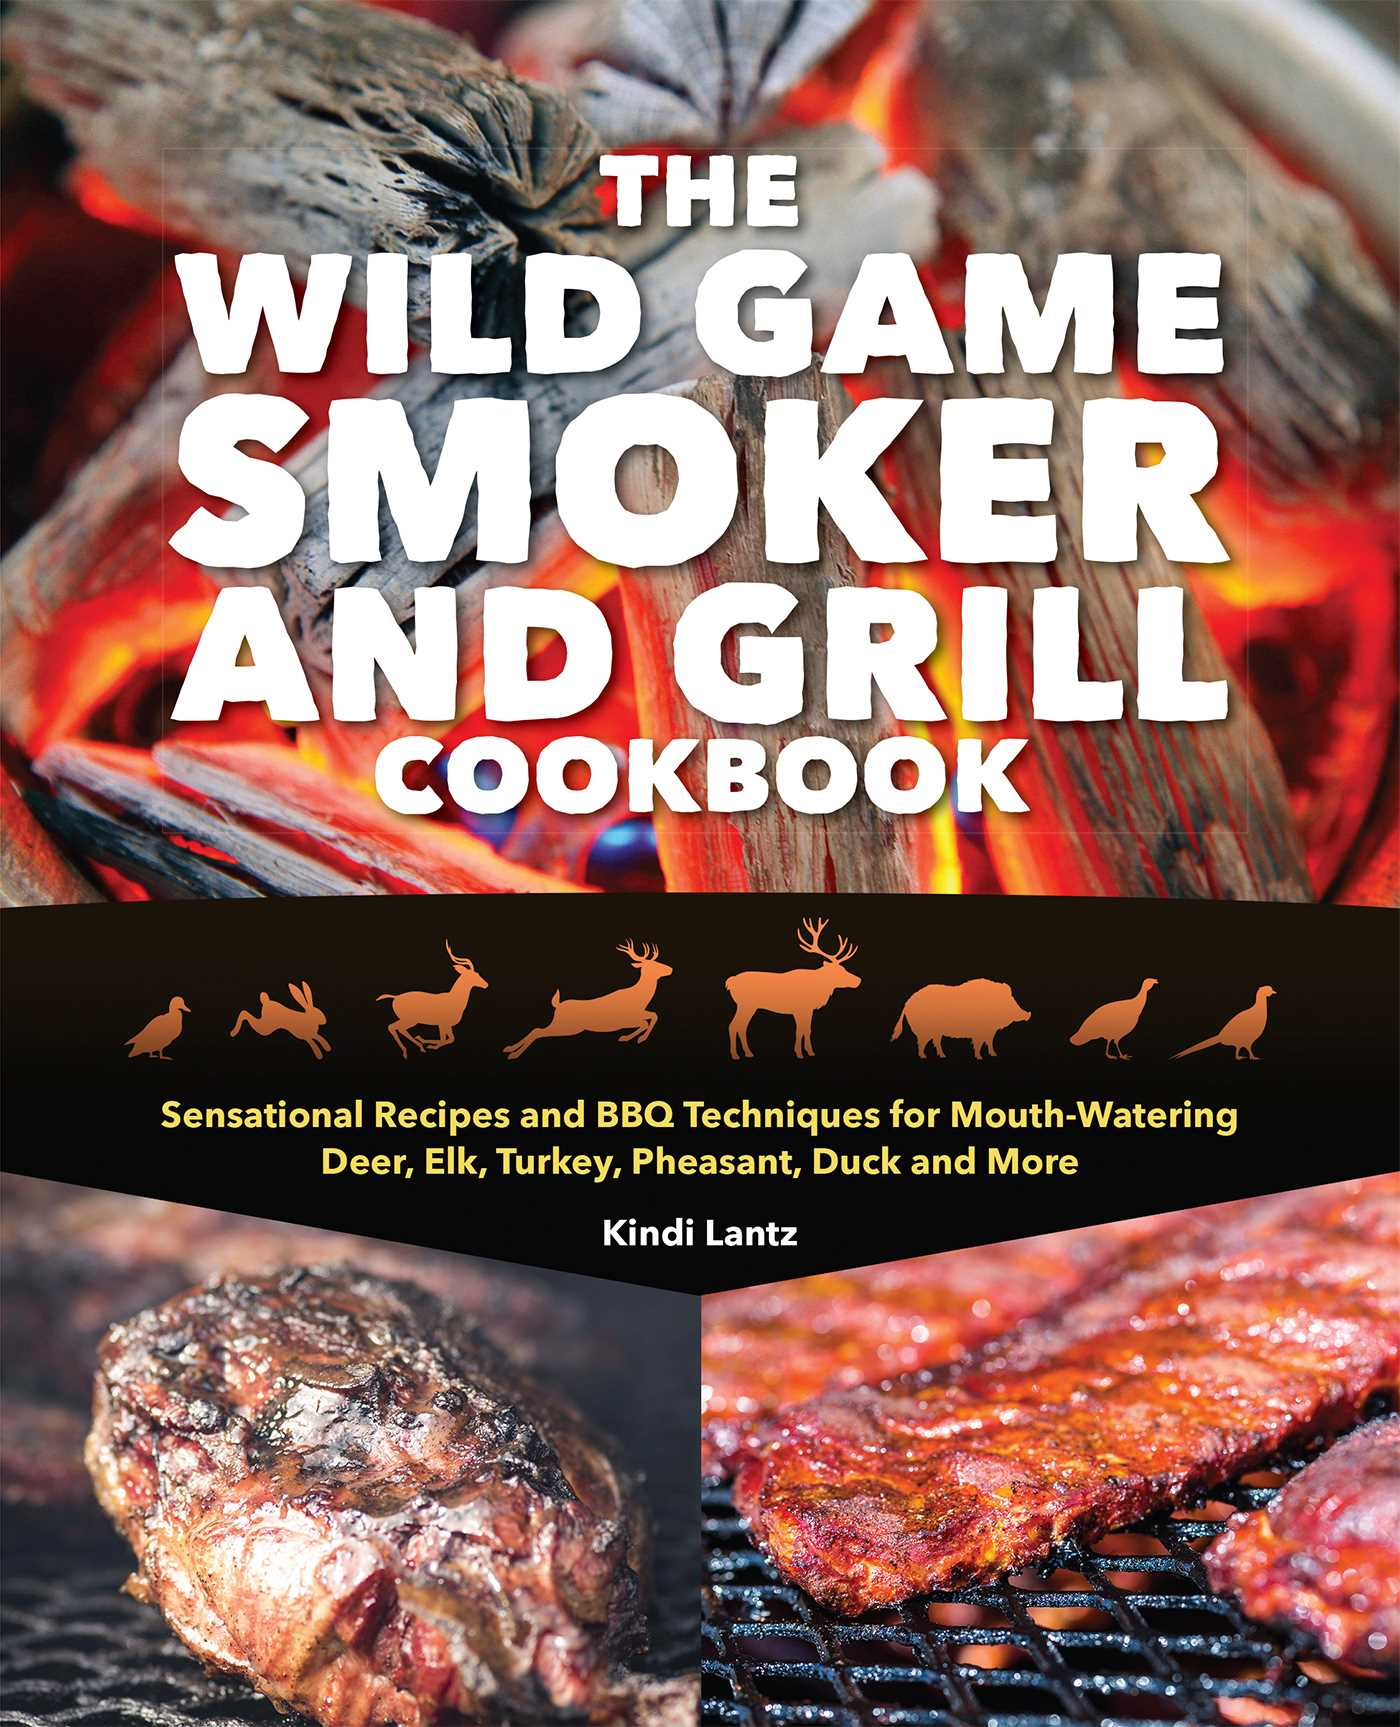 The Wild Game Smoker And Grill Cookbook Ebook By Kindi Lantz Official Publisher Page Simon Schuster Au